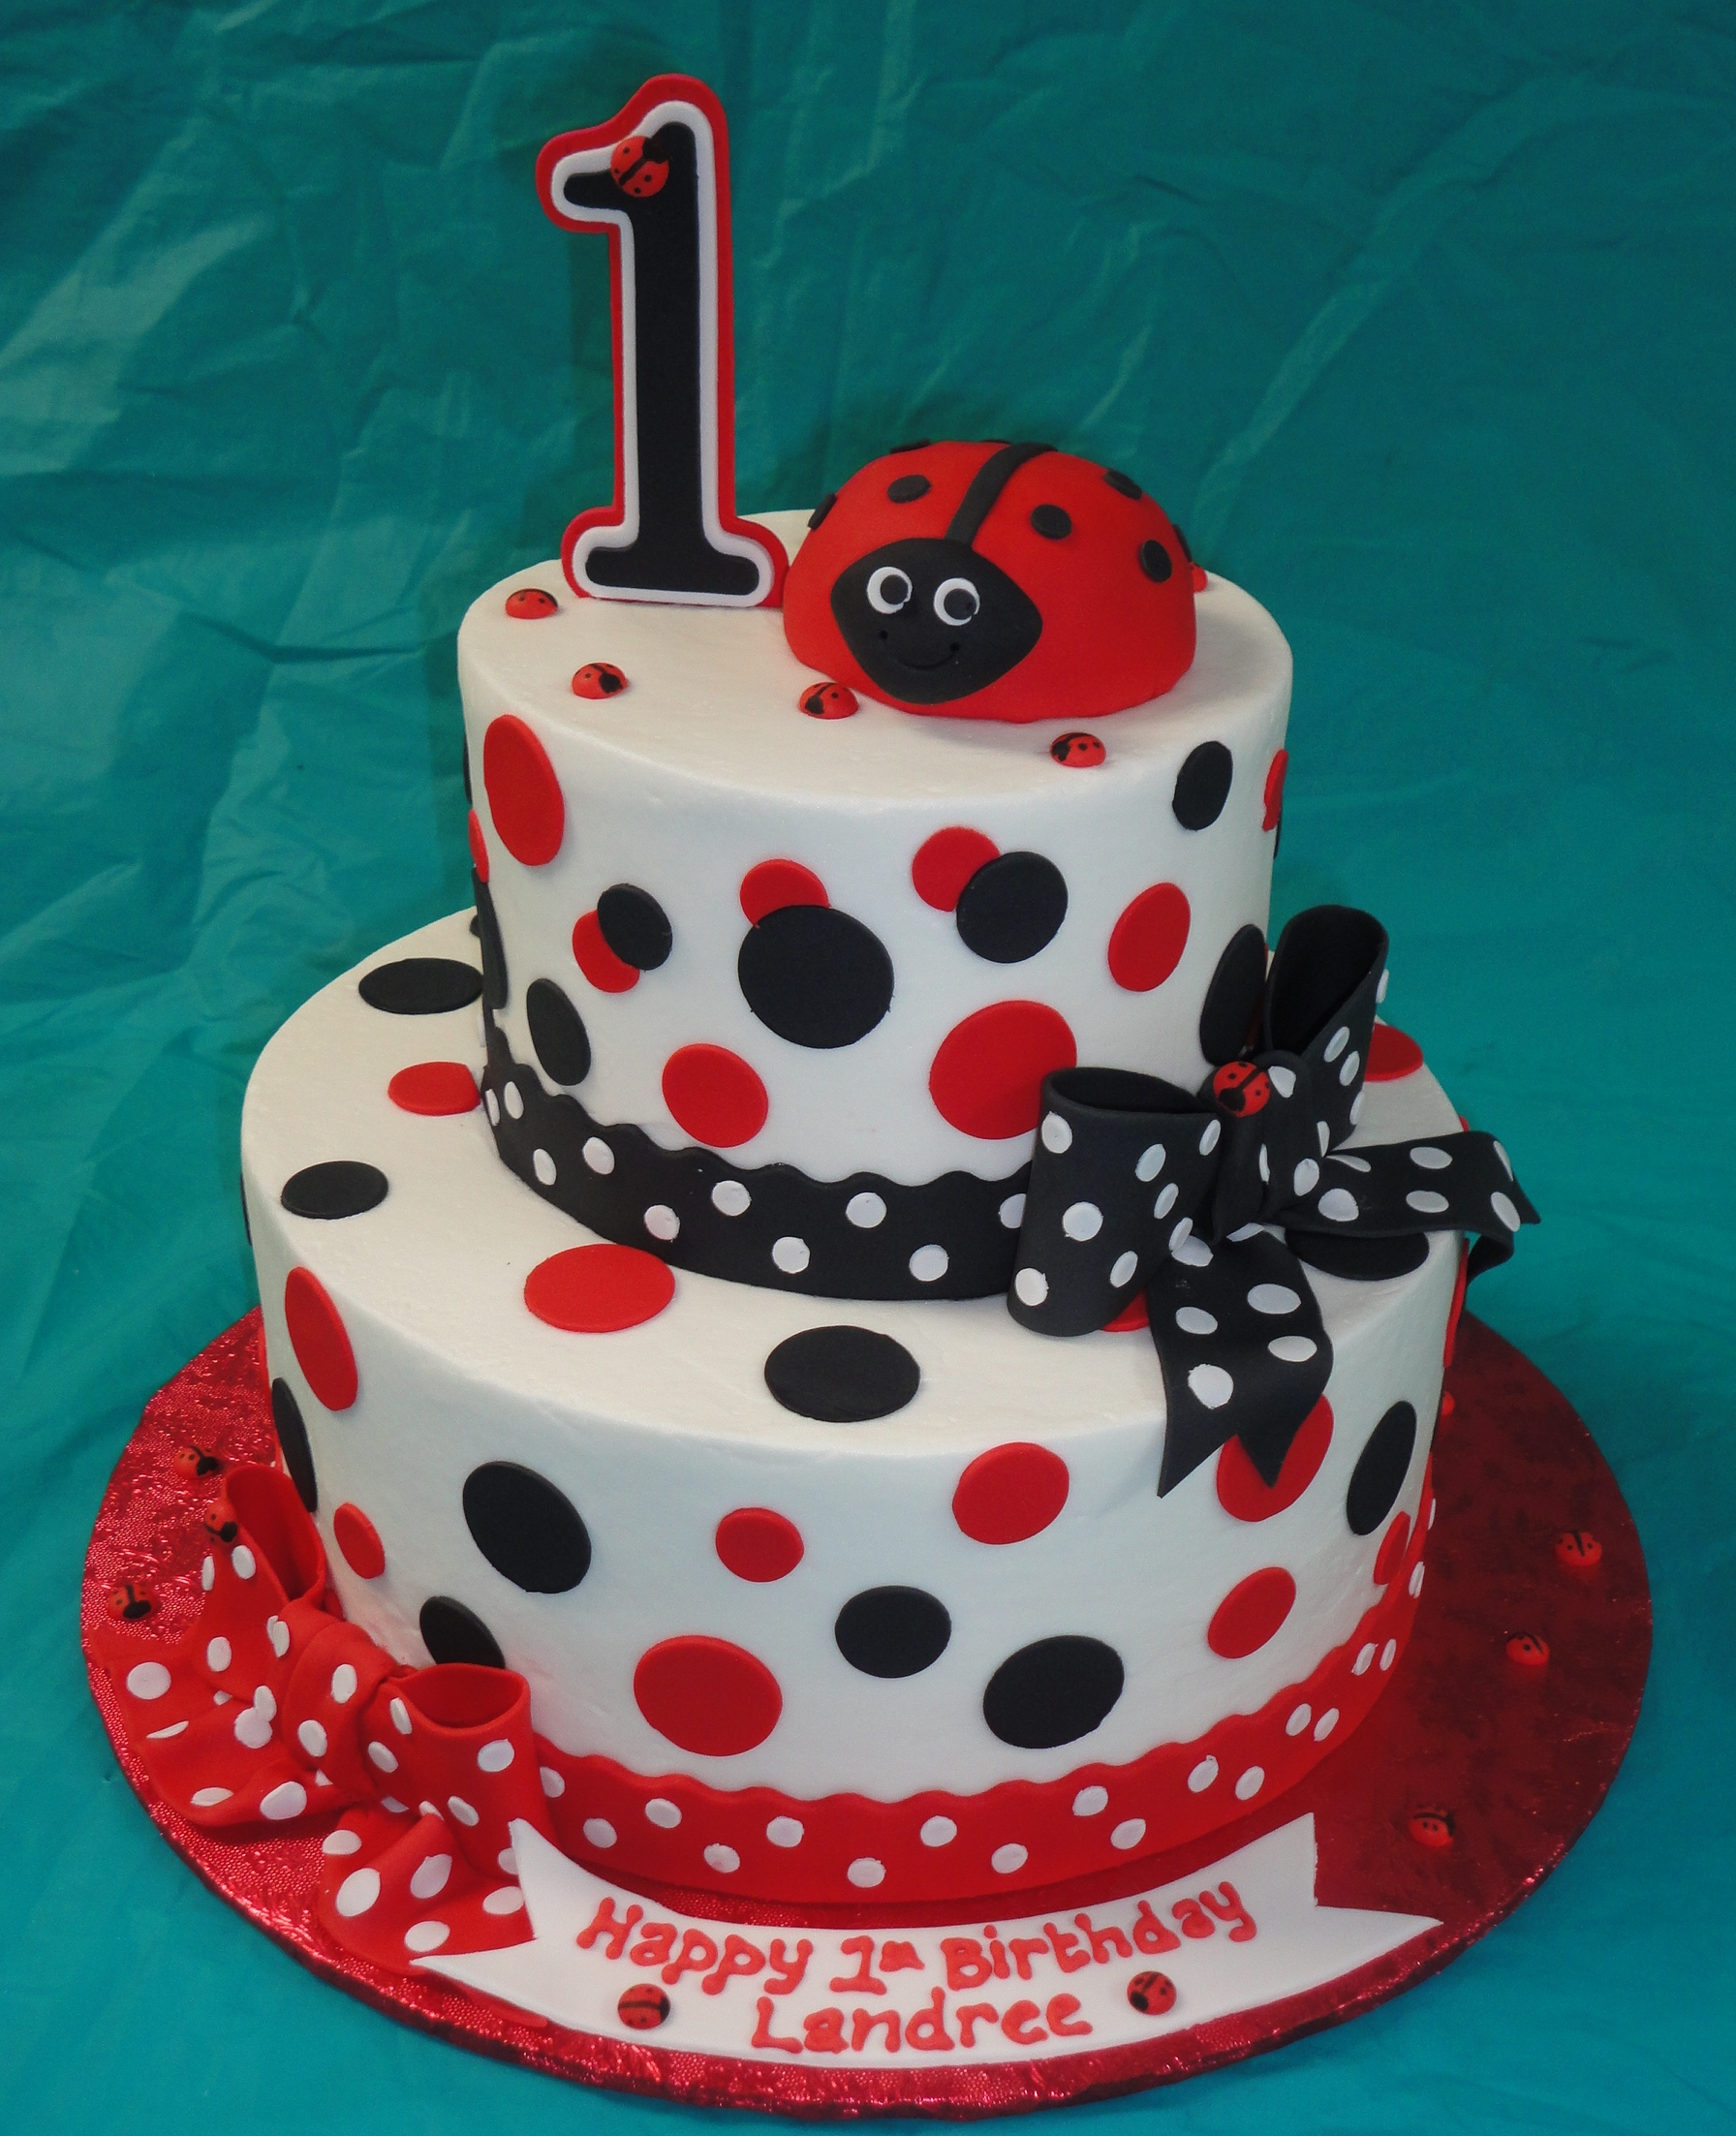 Ladybug cakes decoration ideas little birthday cakes for 1st birthday cake decoration